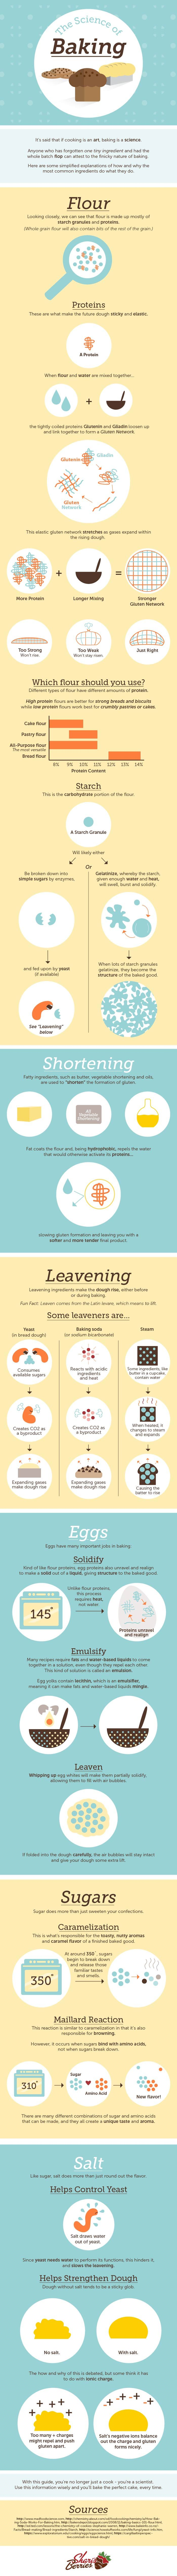 The Science of Baking Infographic from Sherrie's Berries